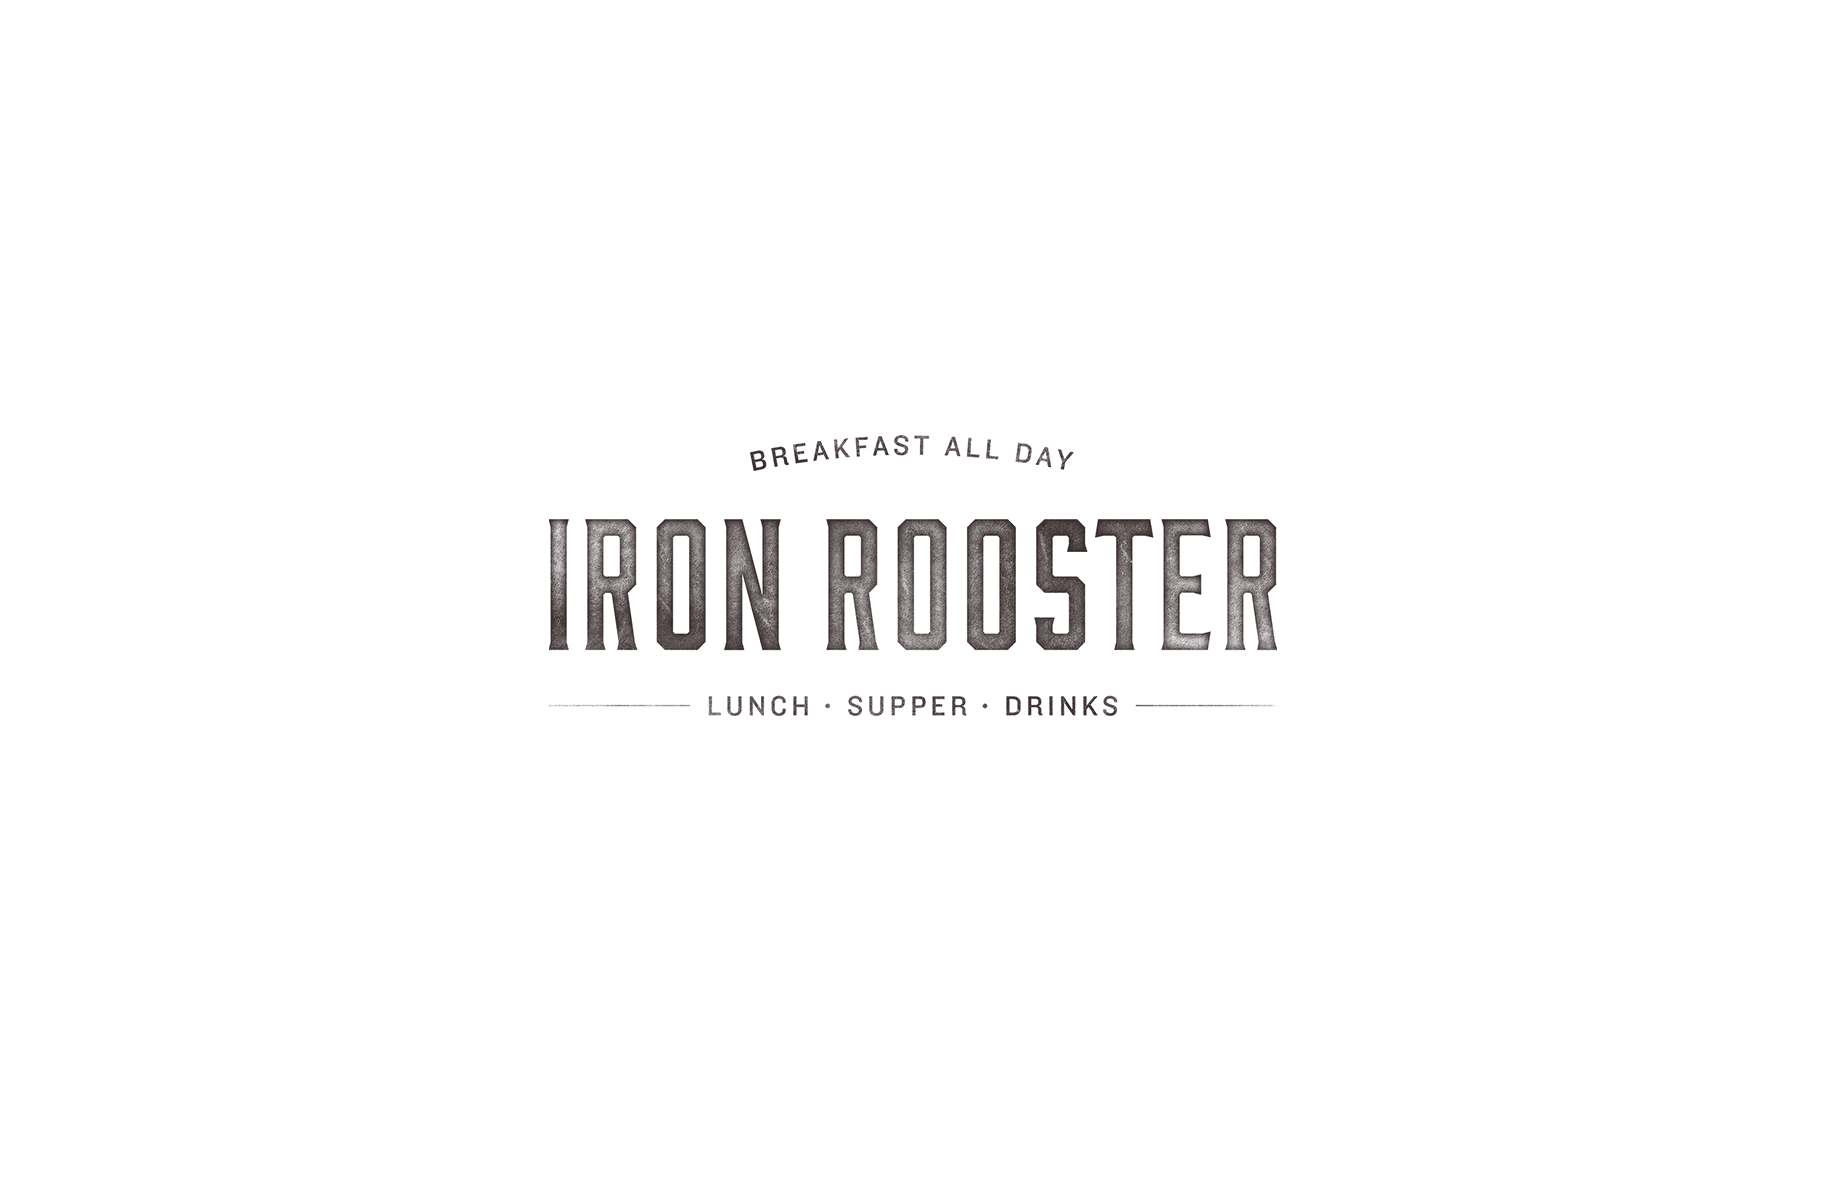 Photo Credit: Iron Rooster